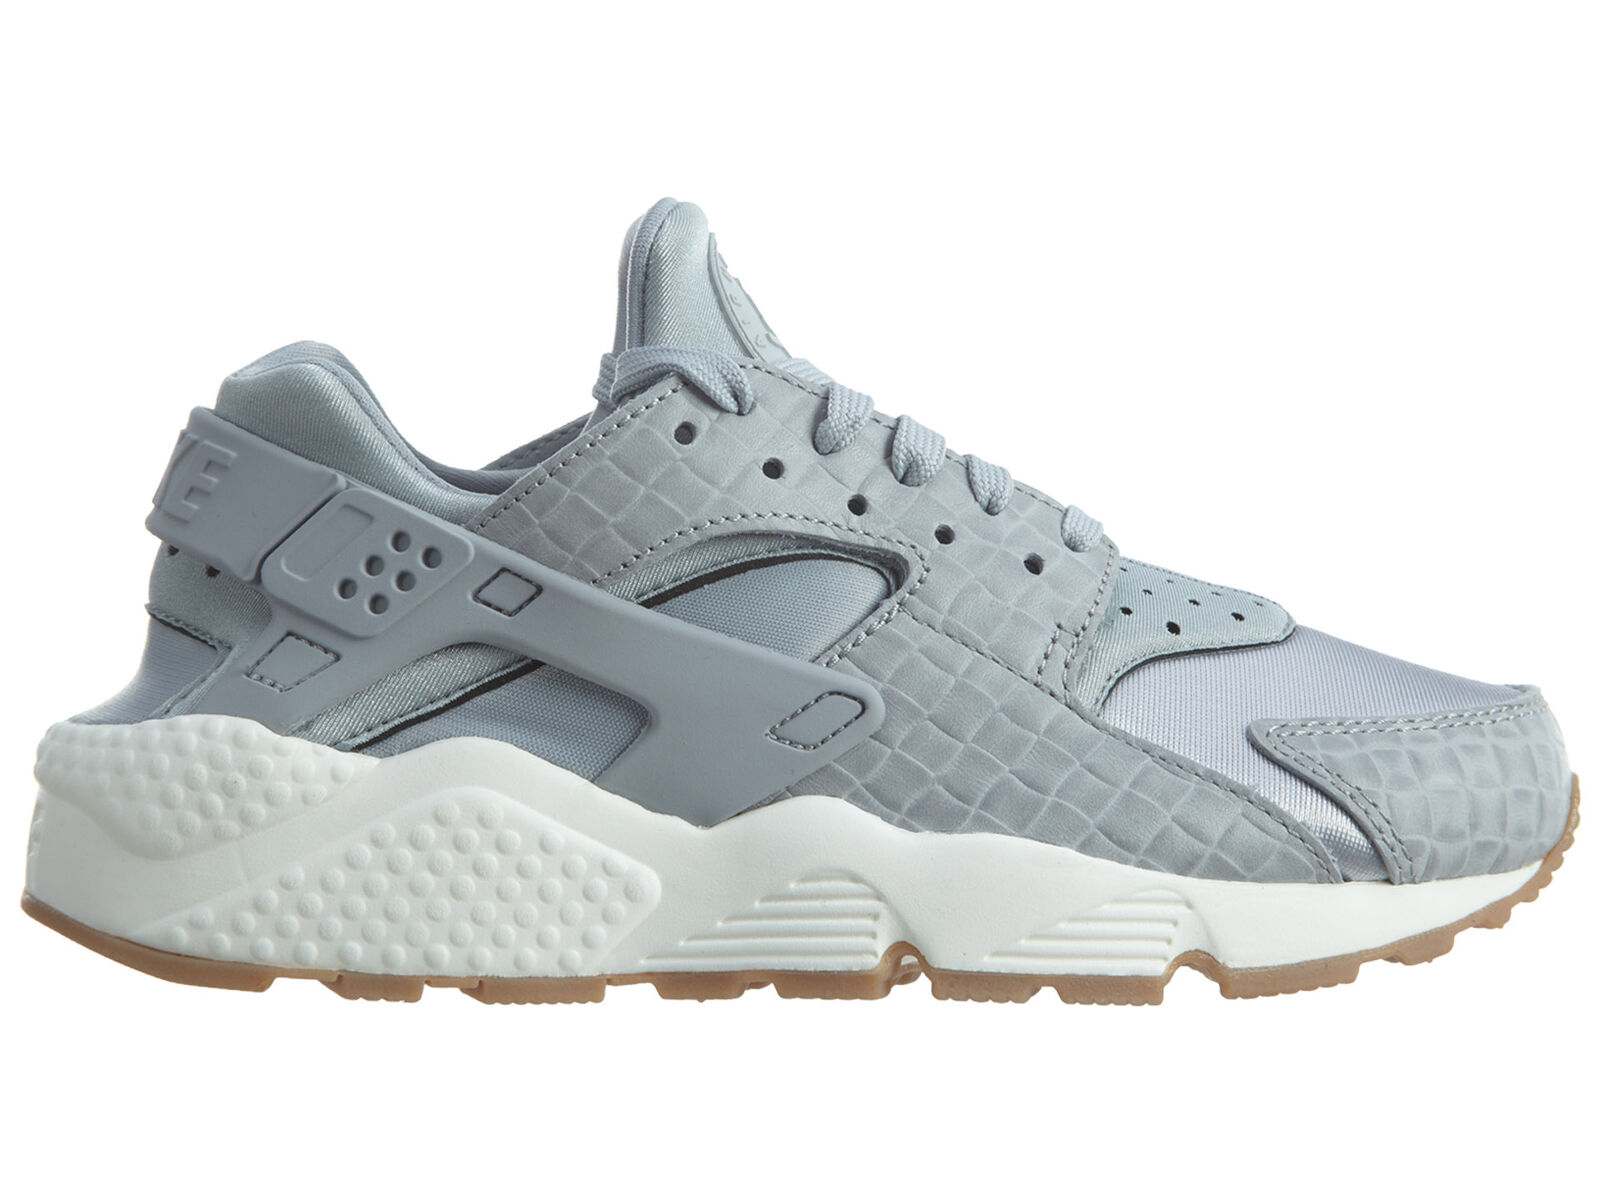 Nike Air Huarache Run Premium Womens 683818-012 Grey Gum Running Shoes Size 7